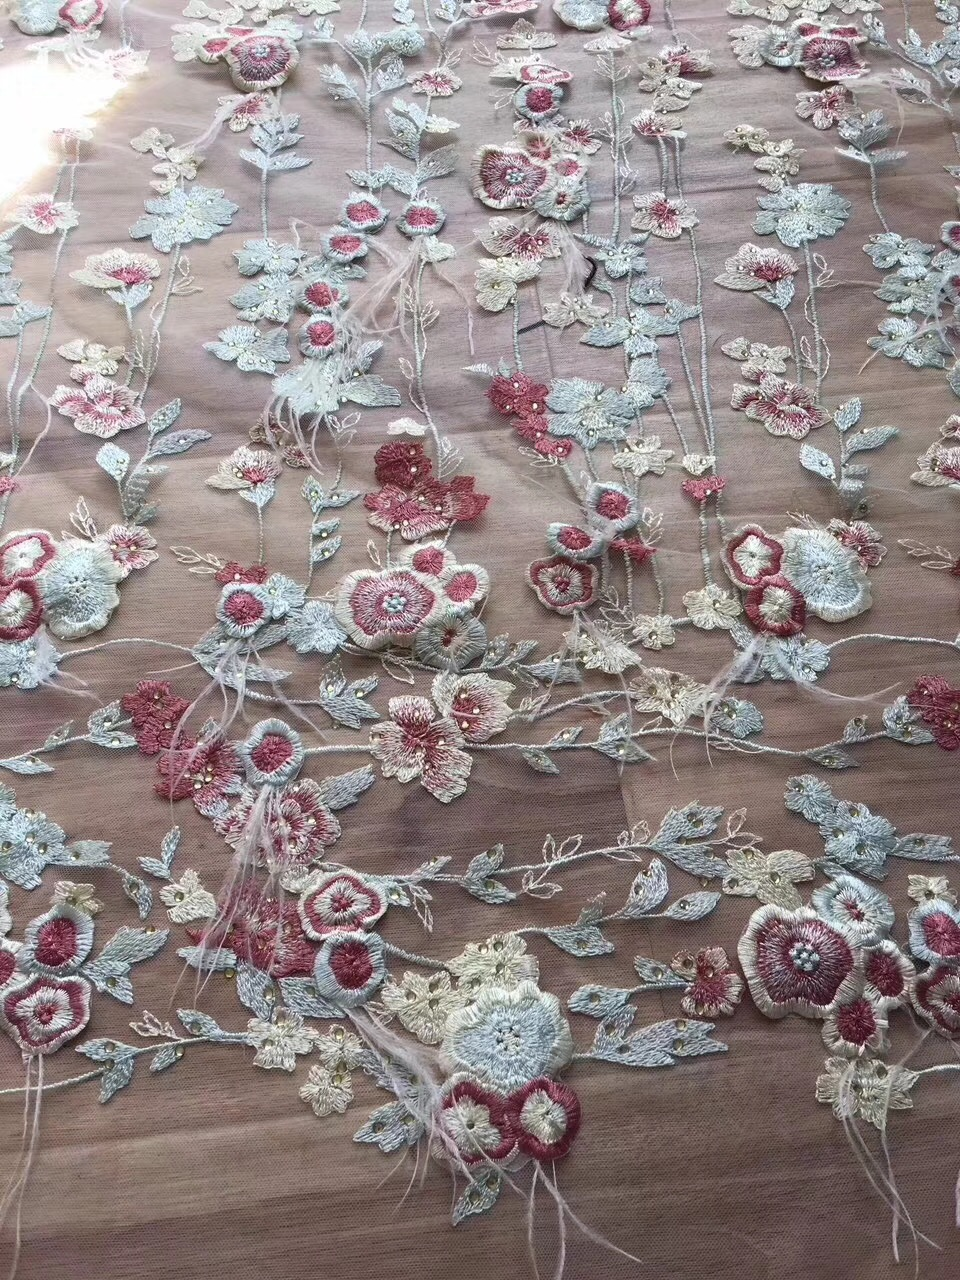 African HANDWORK FEATHER Mesh Rhinestones Lace Fabric 2018 High Quality Tulle Embroidered Lace Fabric